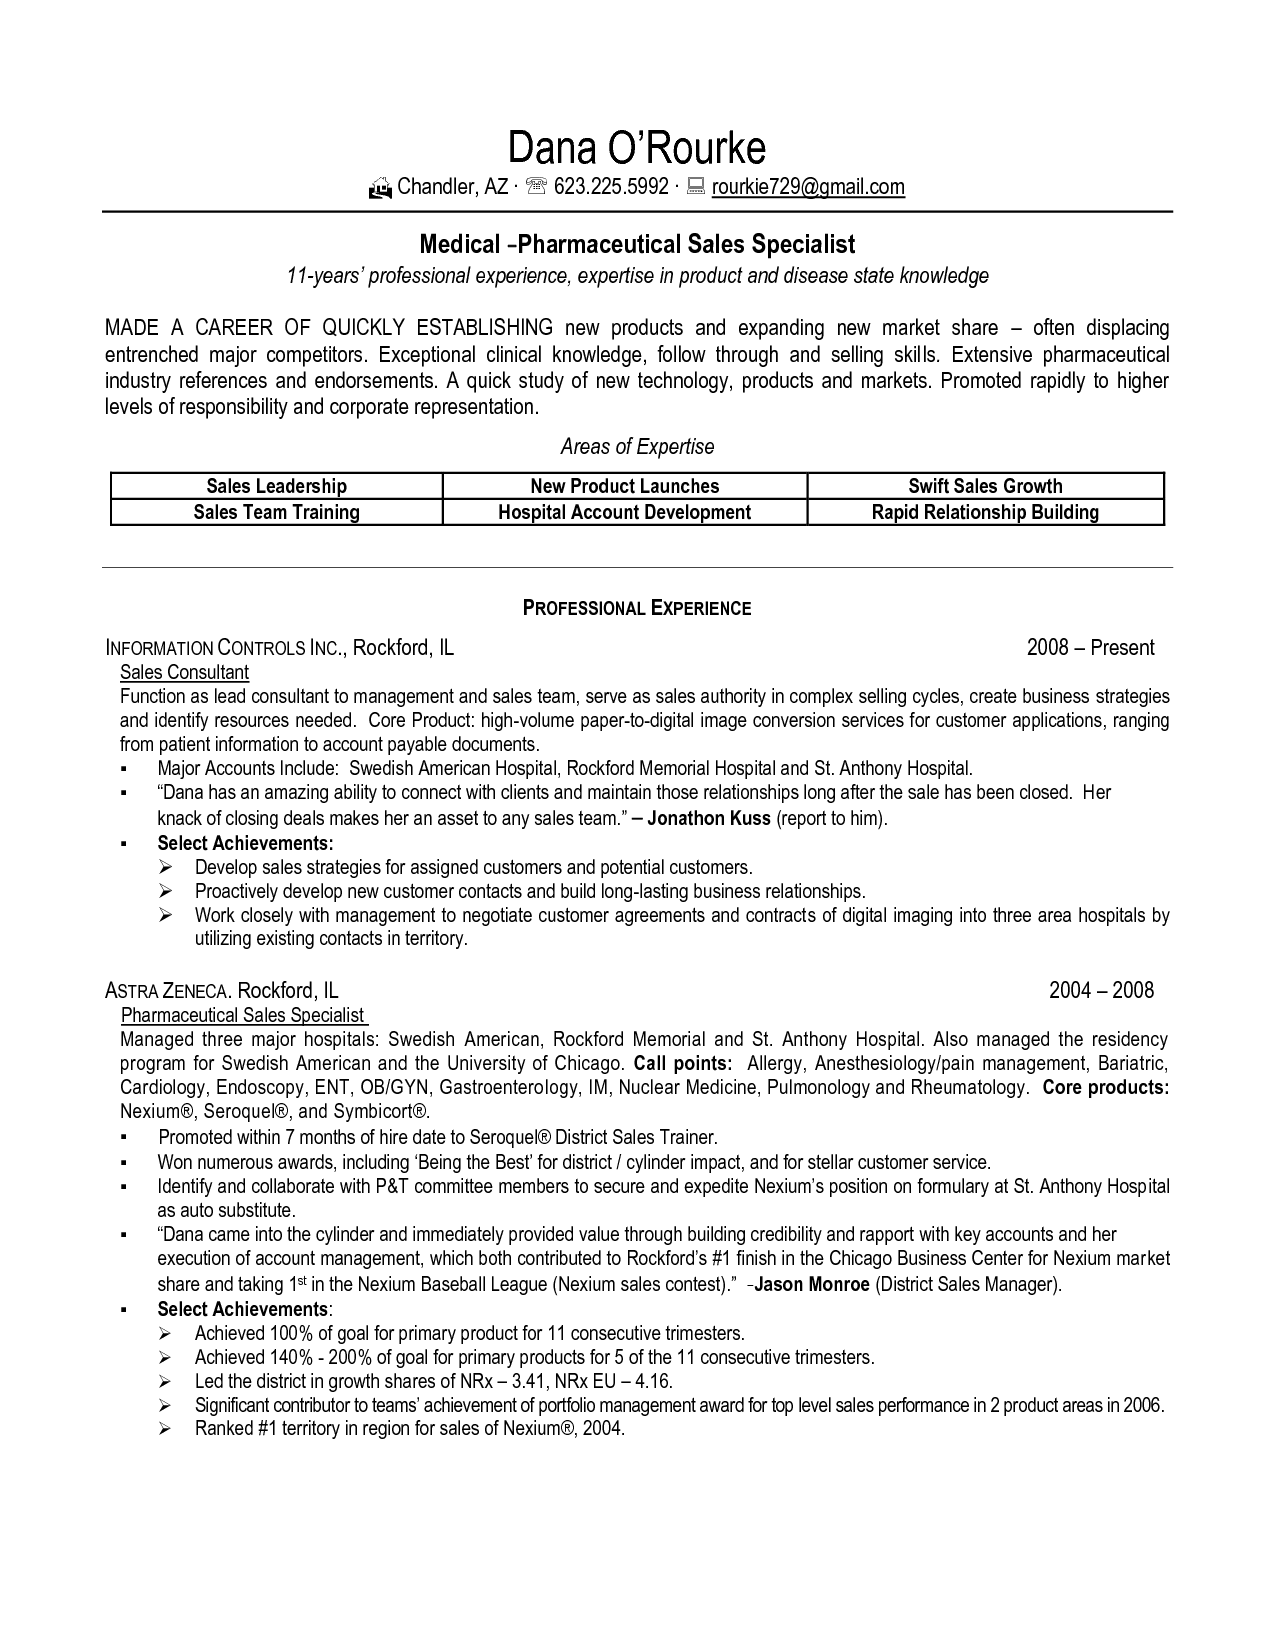 Beautiful Sample Resume For Pharmaceutical Industry Sample Resume For Pharmaceutical  Industry Sample Resume For Pharmaceutical Sales Sample Resume For Pharmacy  ...